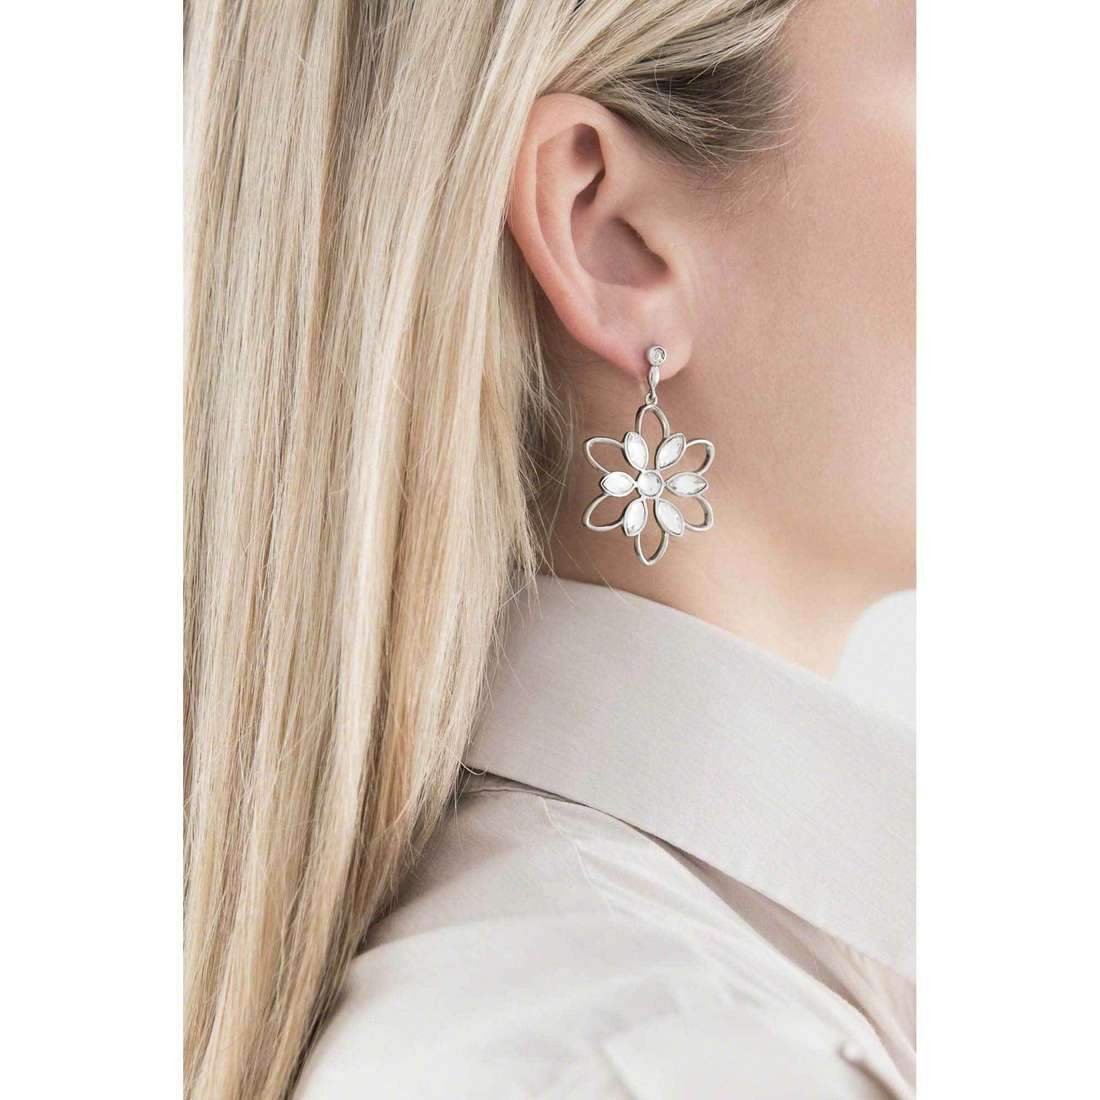 Morellato earrings Fioremio woman SABK20 indosso